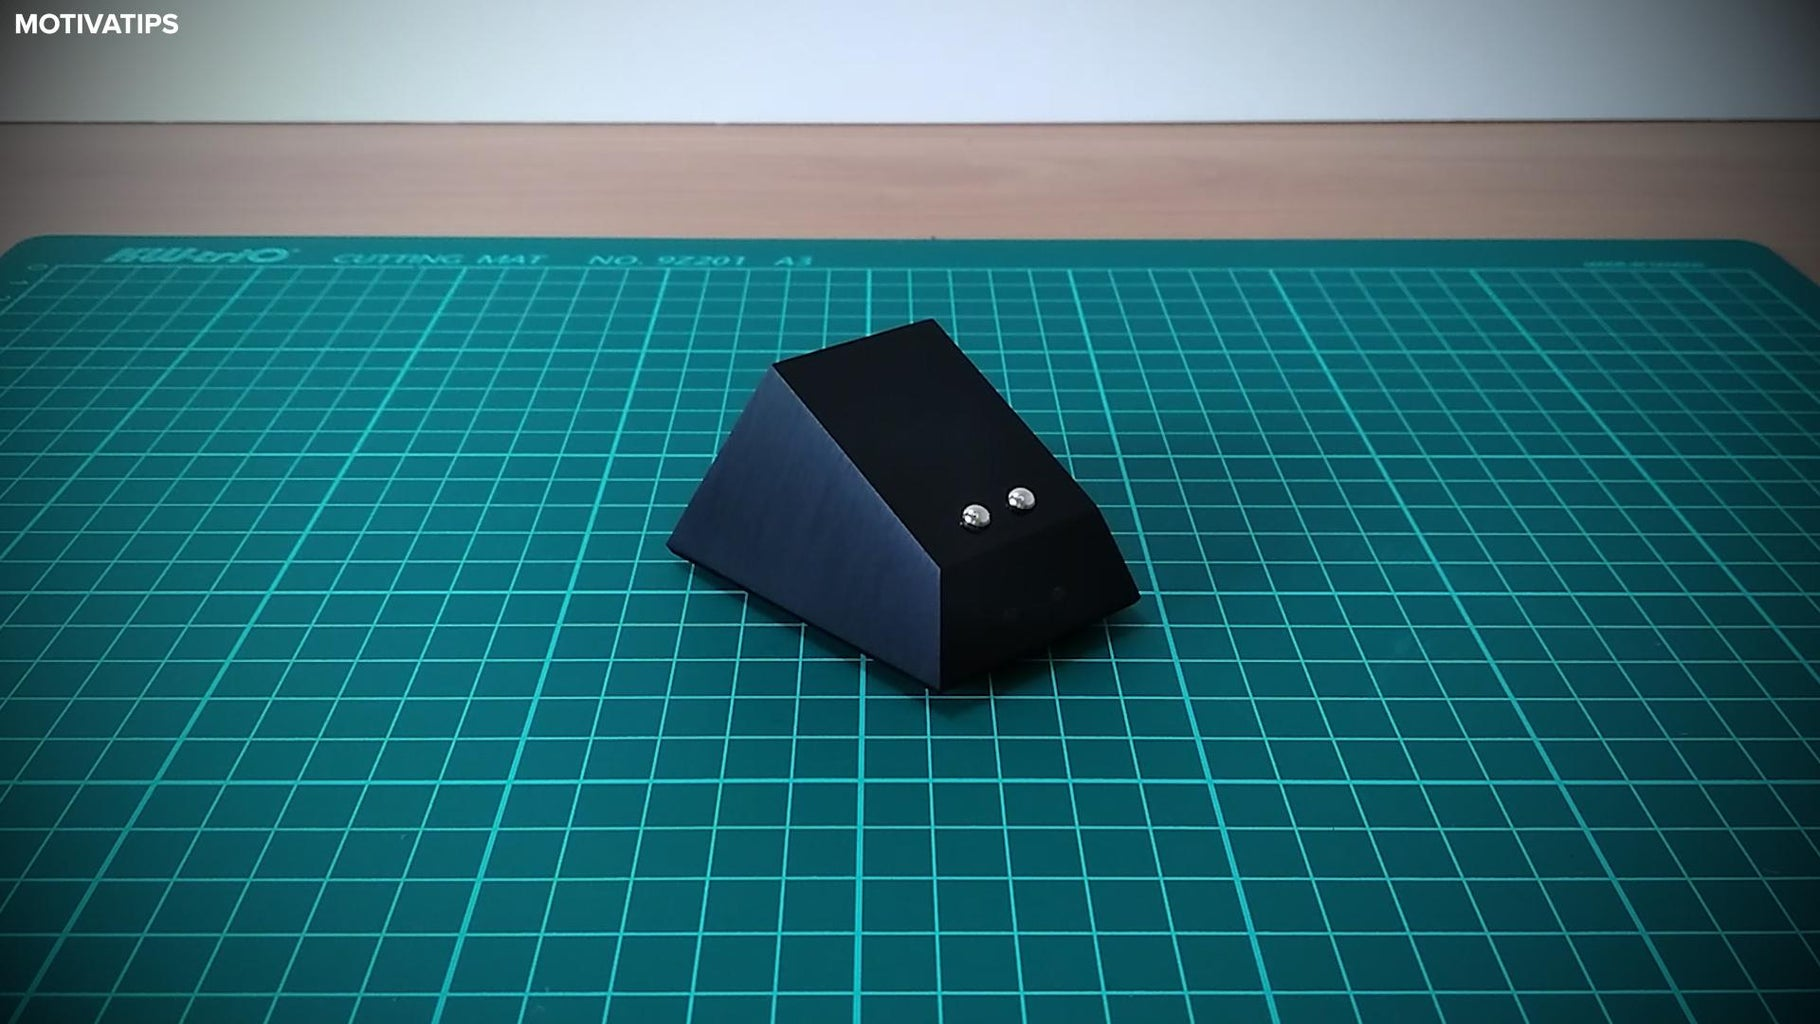 How to Make Mouse Charging Dock